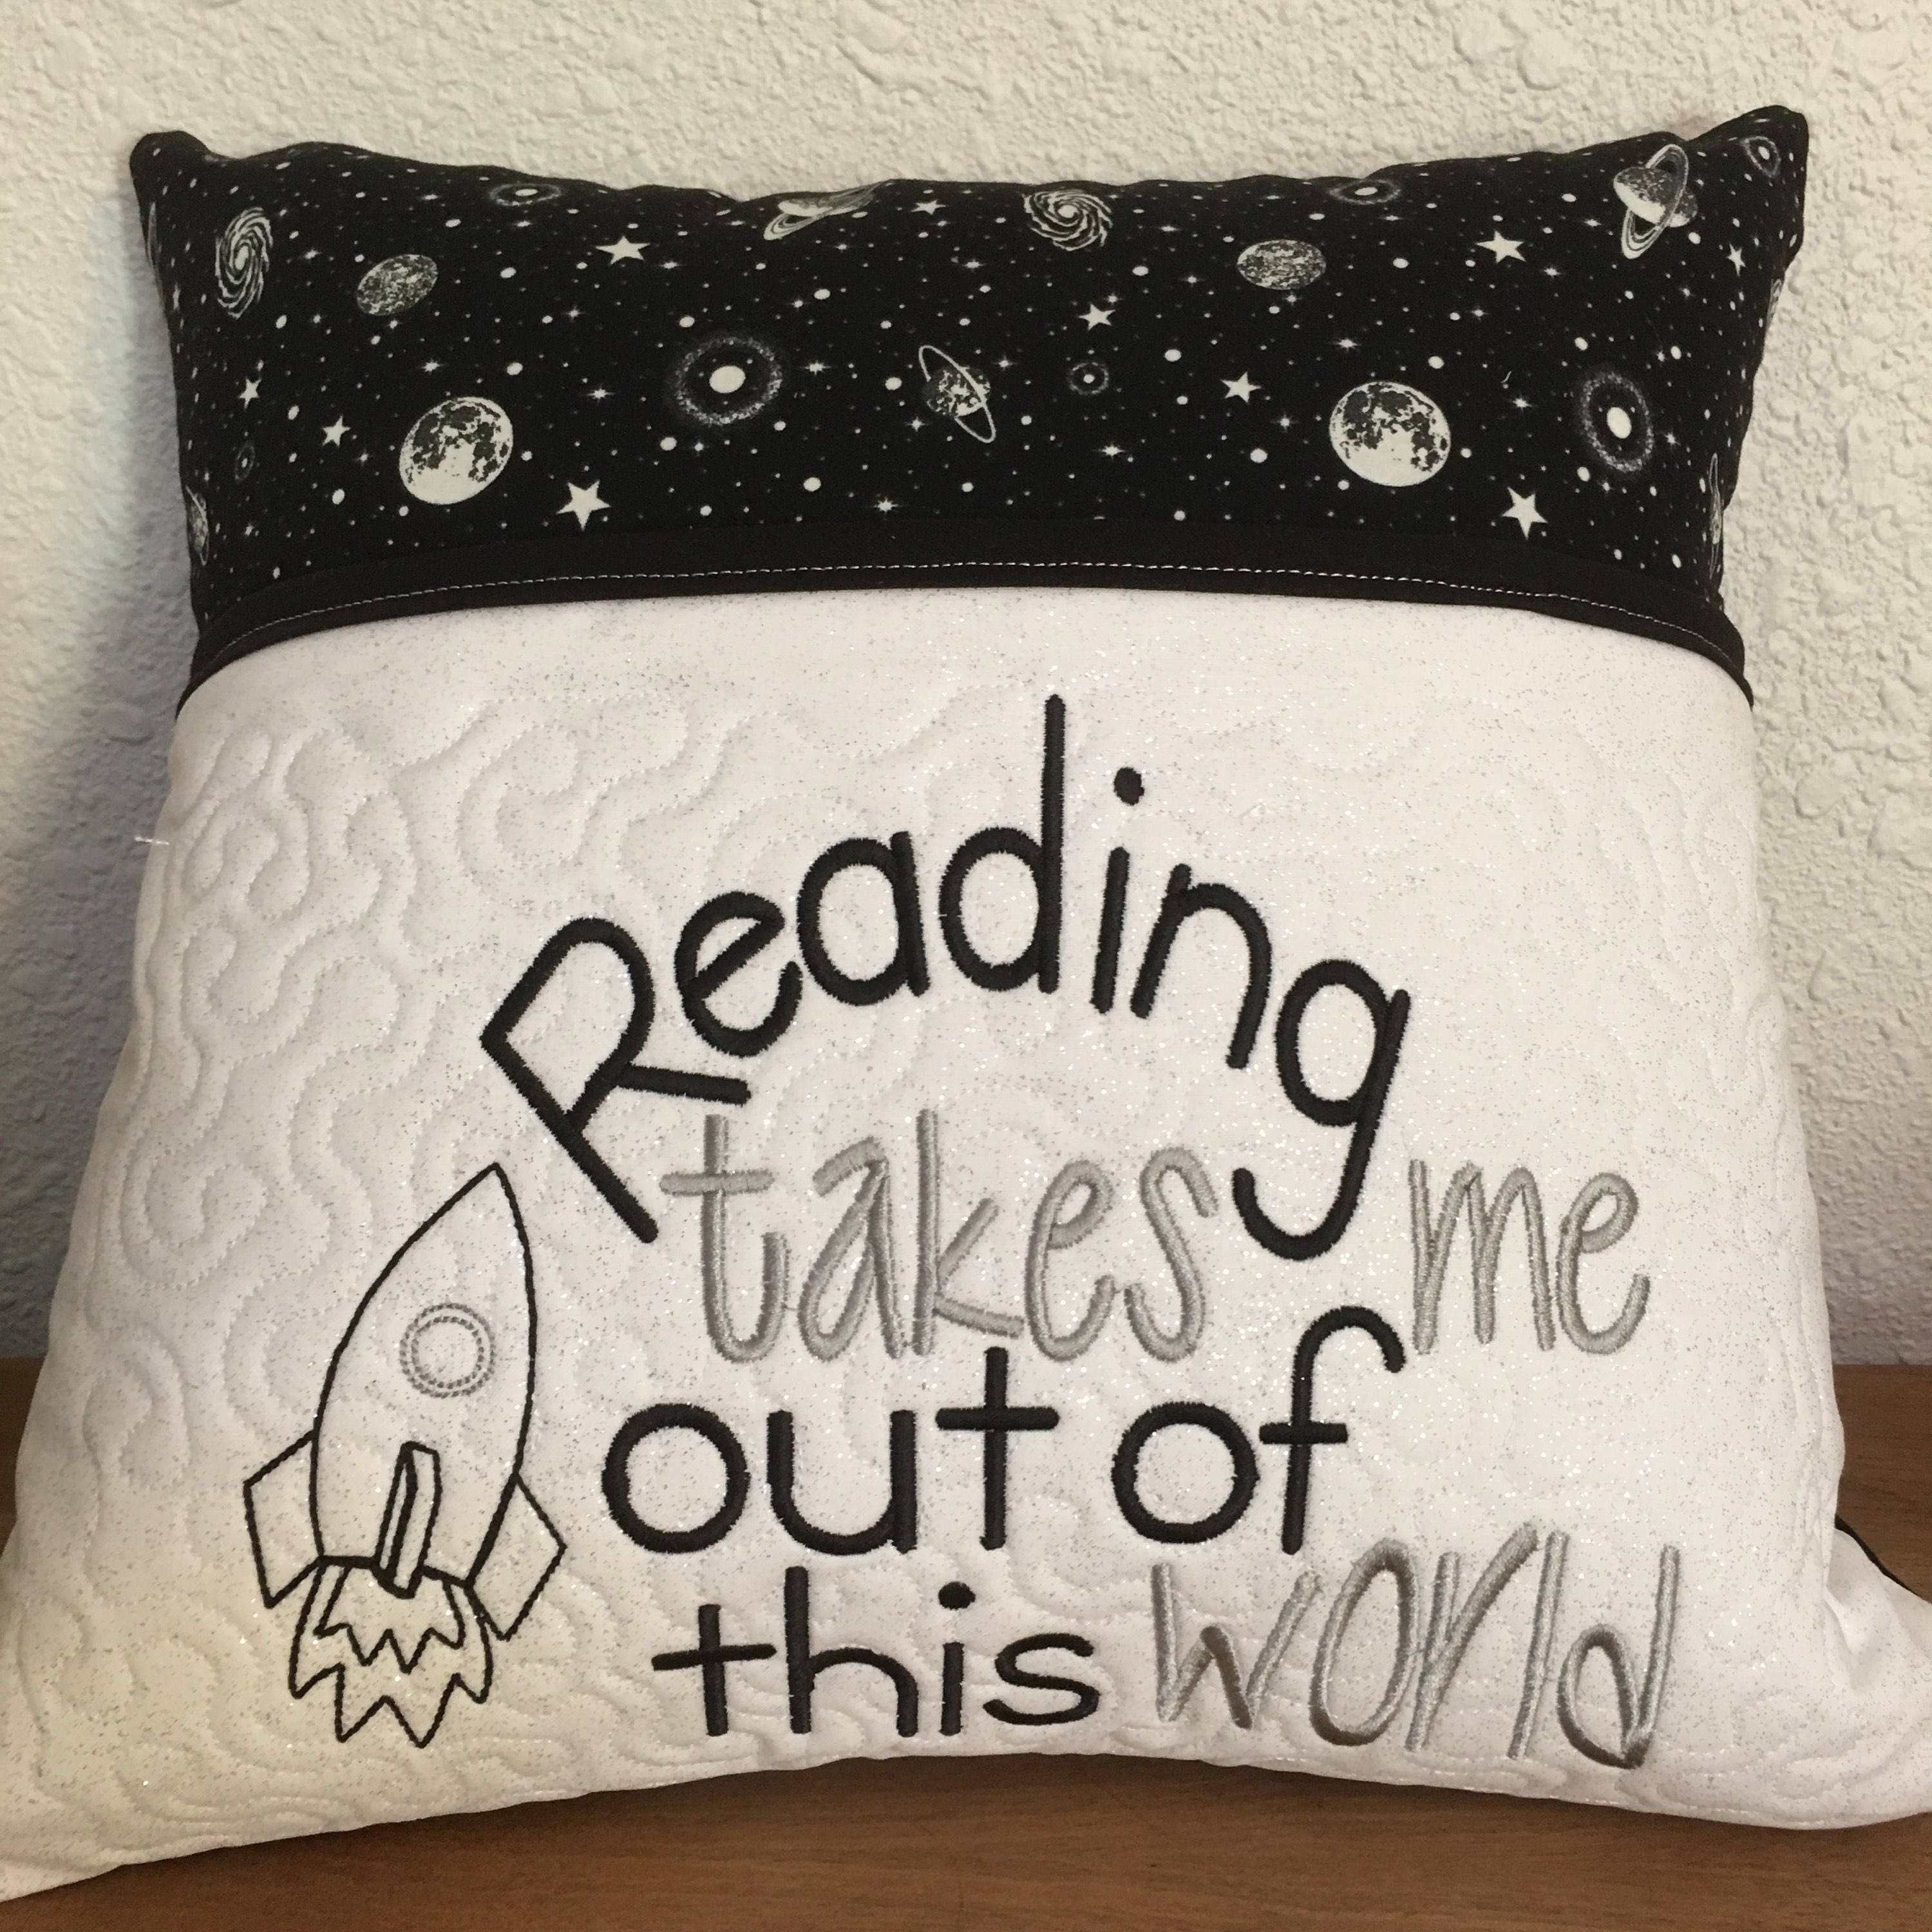 patchwork reading make and more with sewing pocket tutorial learn a pillow to pattern patterns free how diy